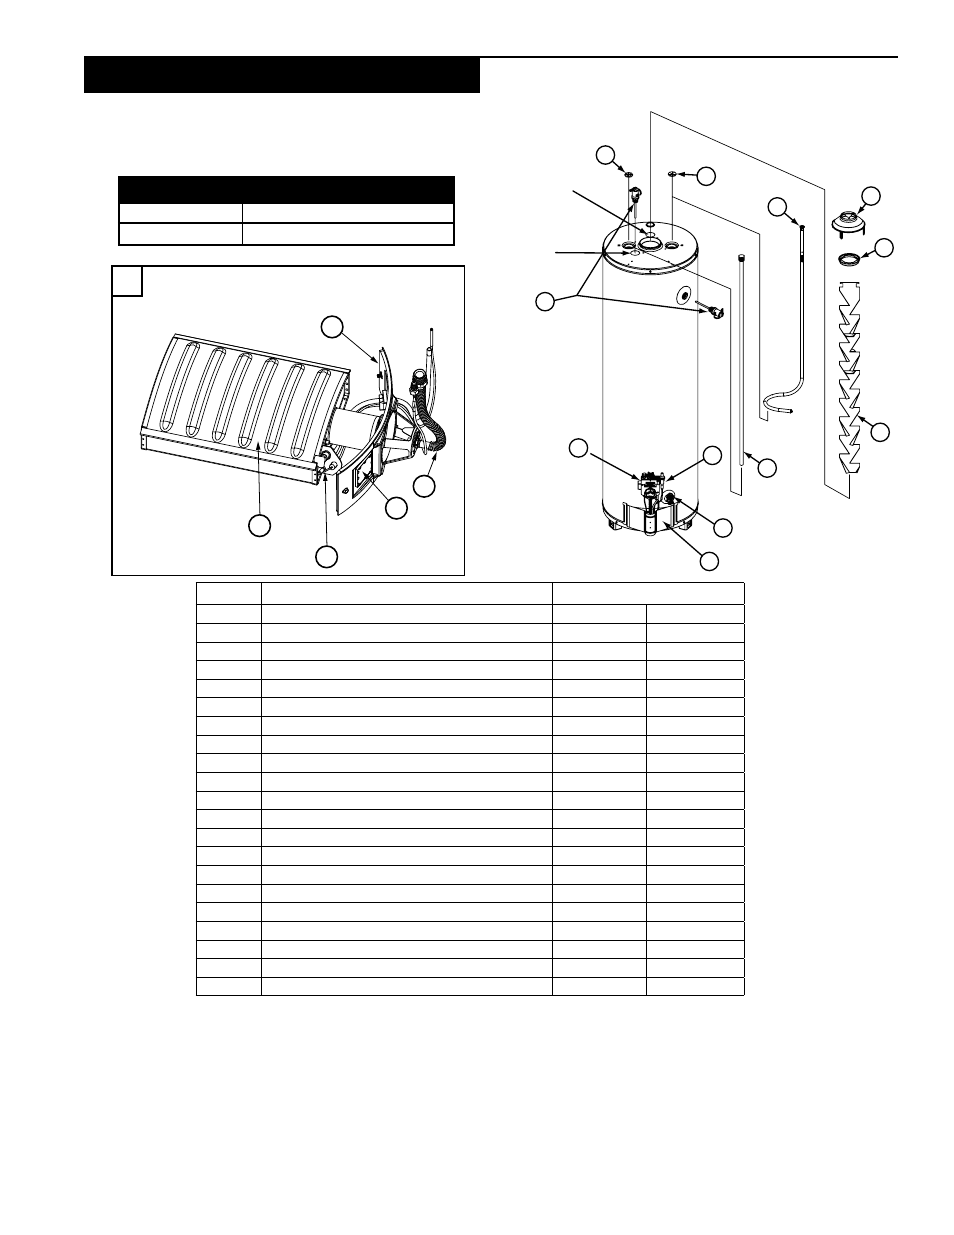 Kenmore Electric Water Heater Wiring Diagram : Sears gas water heater parts sh me